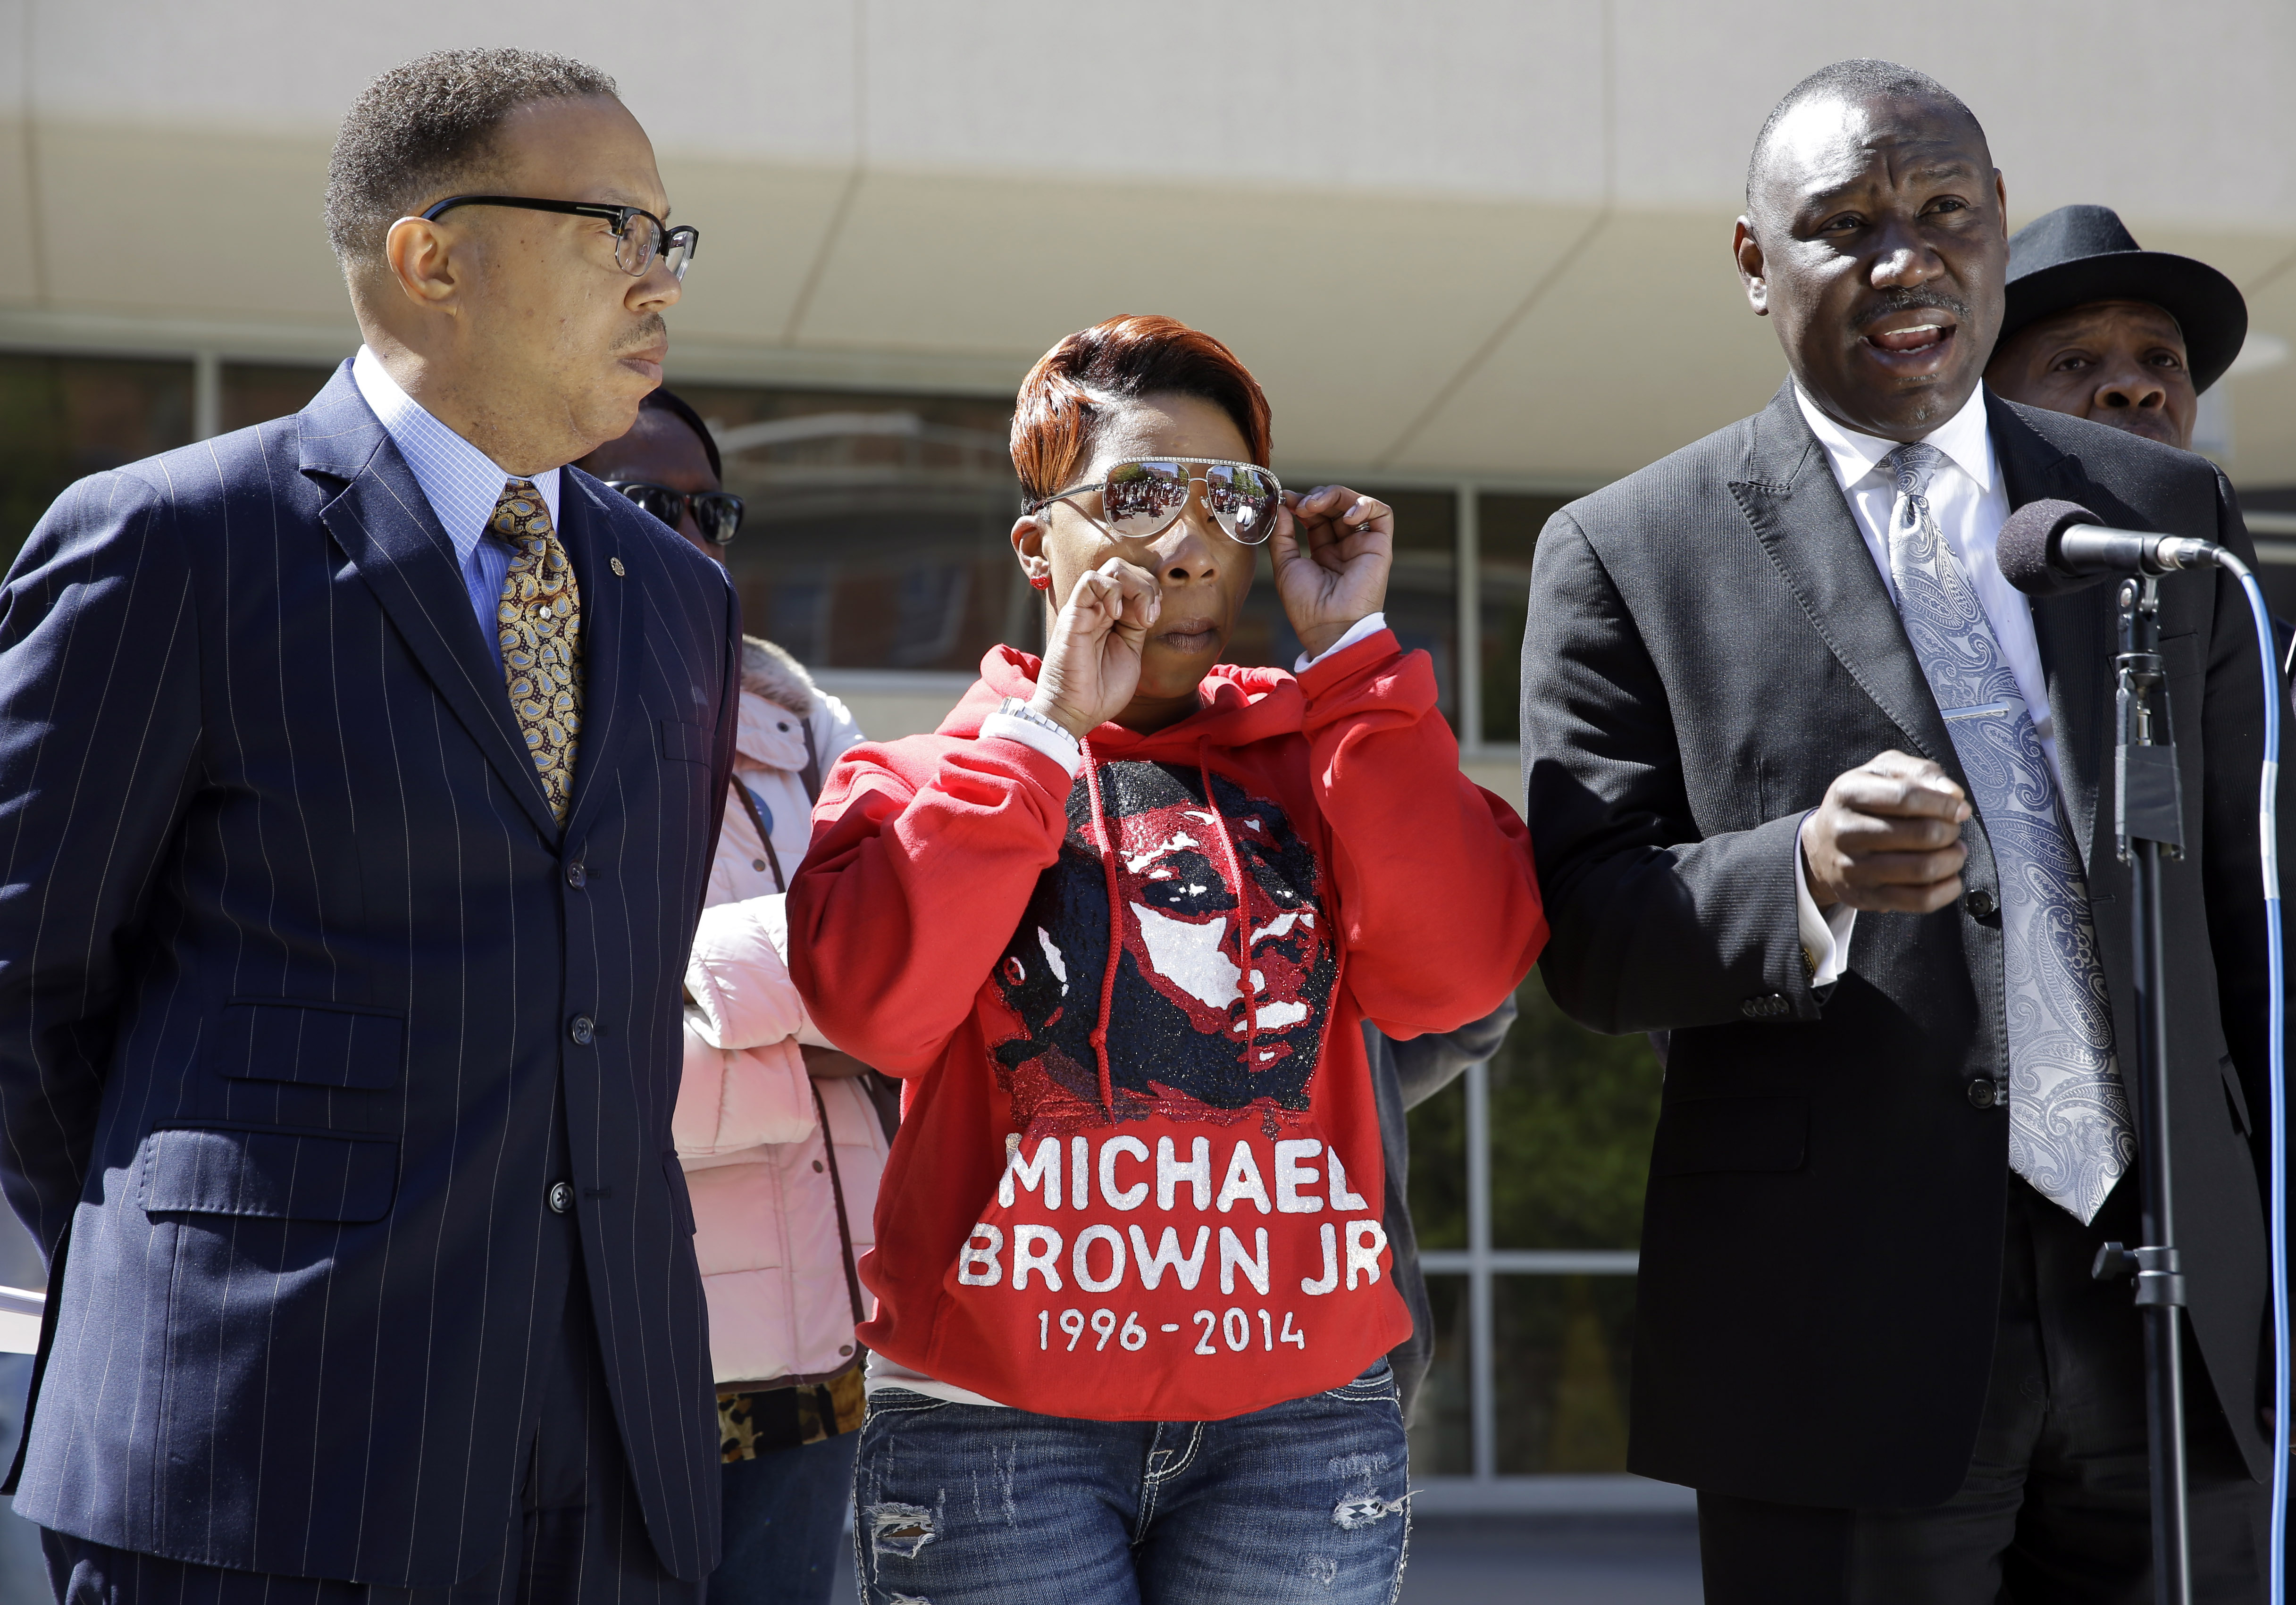 Lesley McSpadden, mother of Michael Brown, wipes her eye as she is flanked by her attorneys Anthony D. Gray, left, and Benjamin L. Crump, right, during a news conference April 23, 2015, in Clayton, Mo.